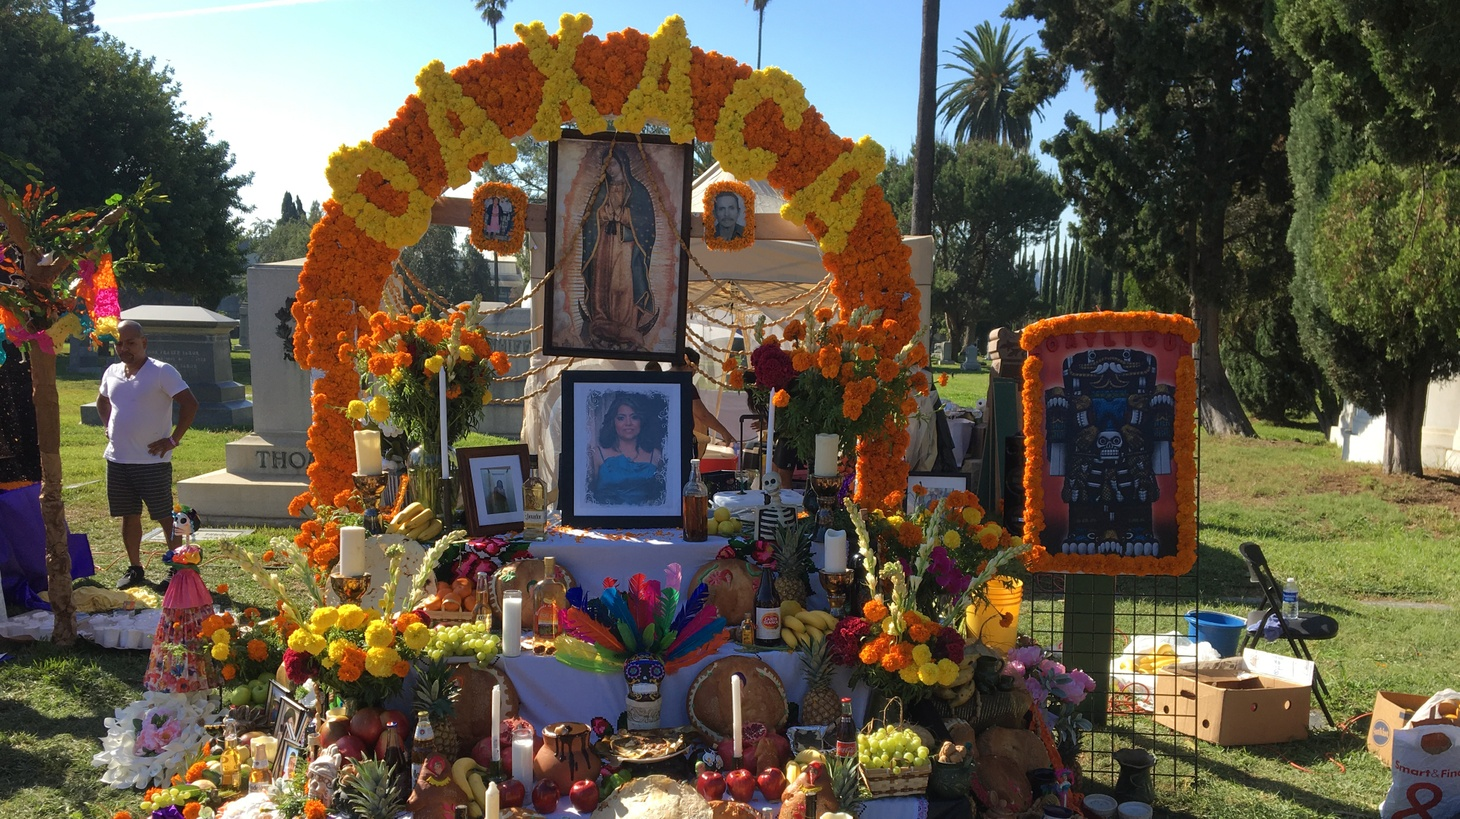 A ritual altar, or ofrenda, on view at Hollywood Forever Cemetery.